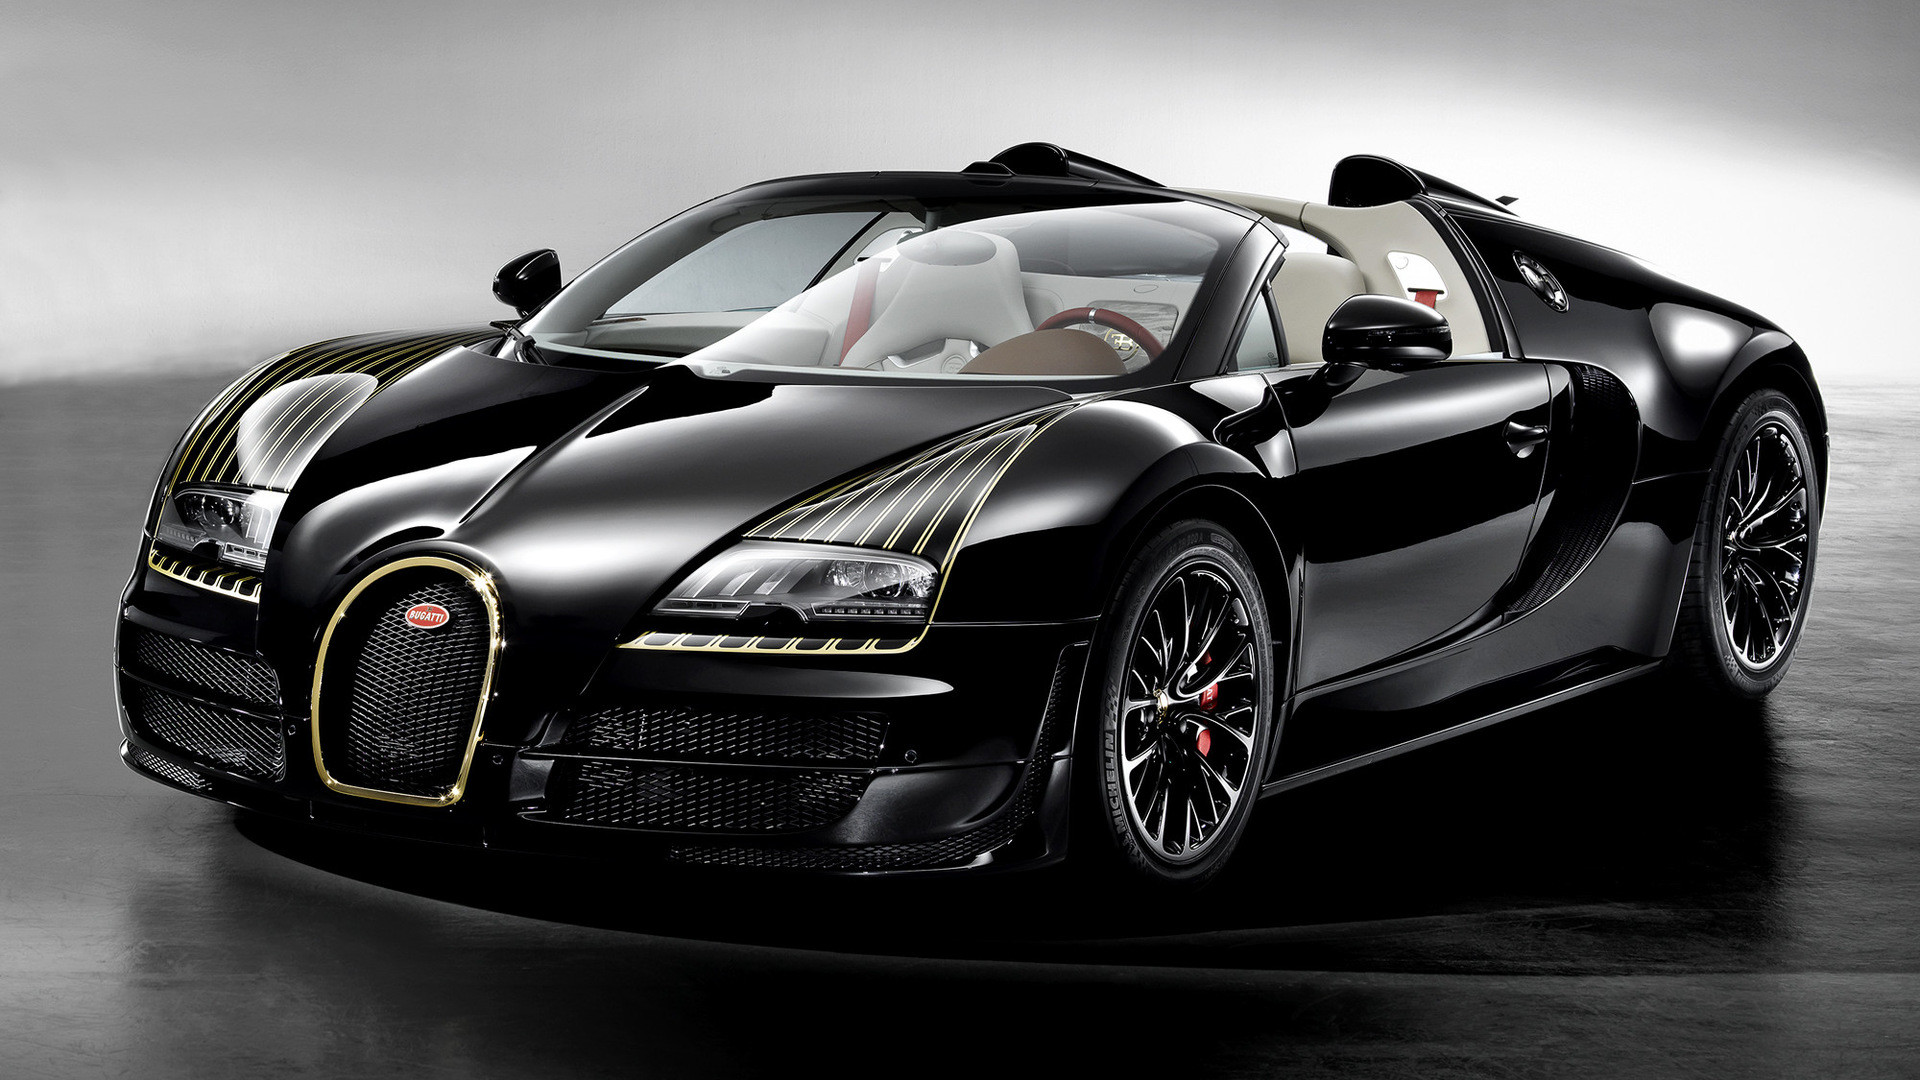 Bugatti Veyron Wallpapers Hd 73 Background Pictures